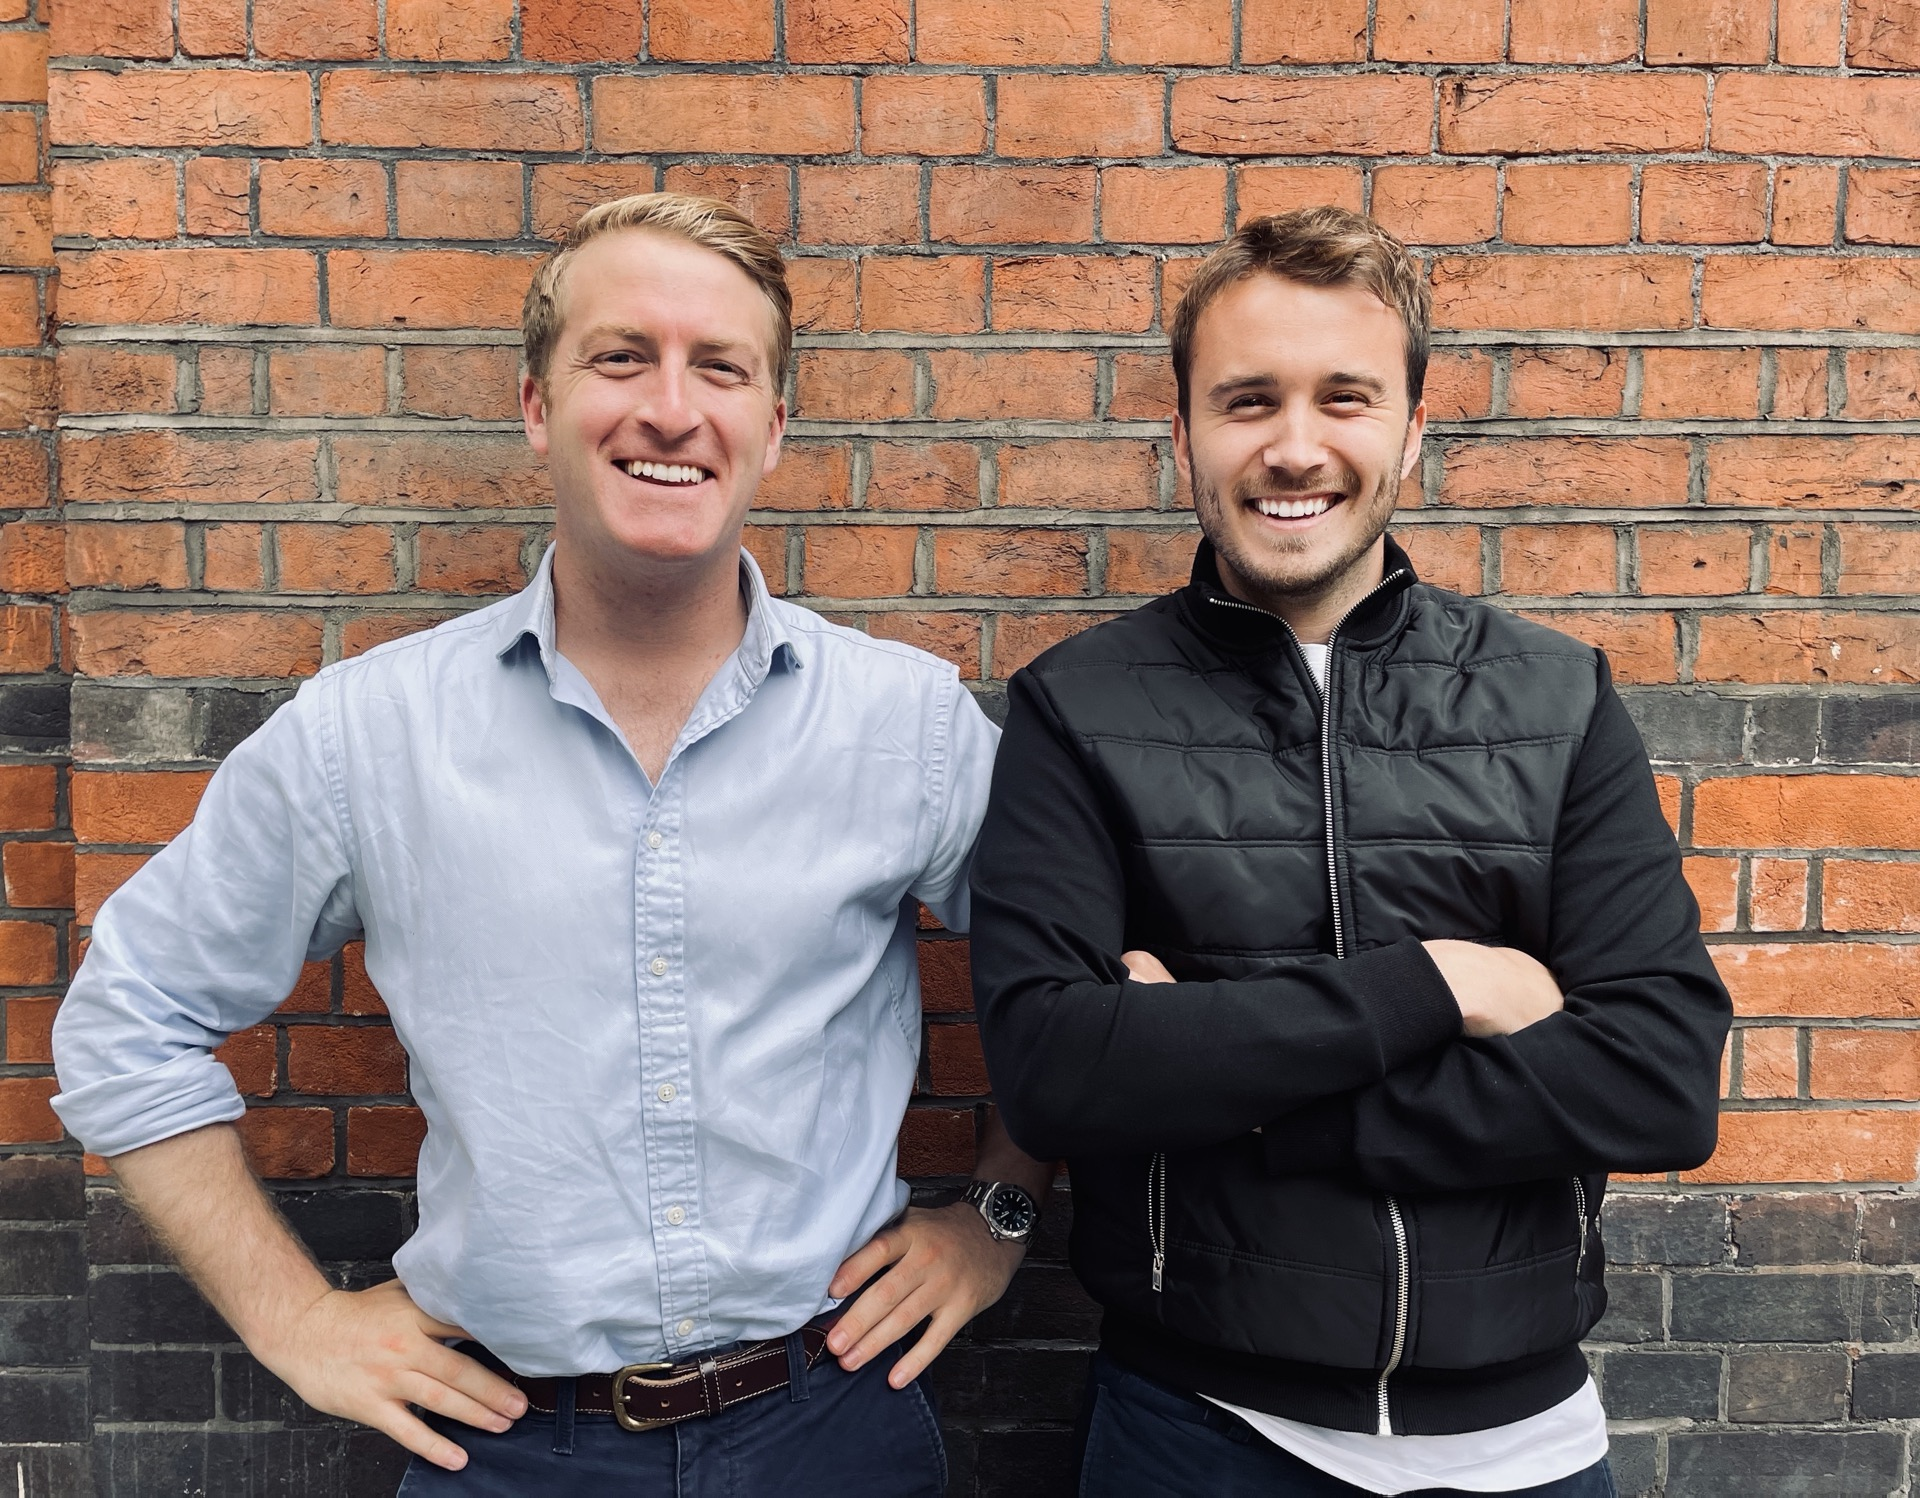 Founder Interview: Cinderella dating app Thursday lands £2.5m plus stress advice from Monzo's Blomfield